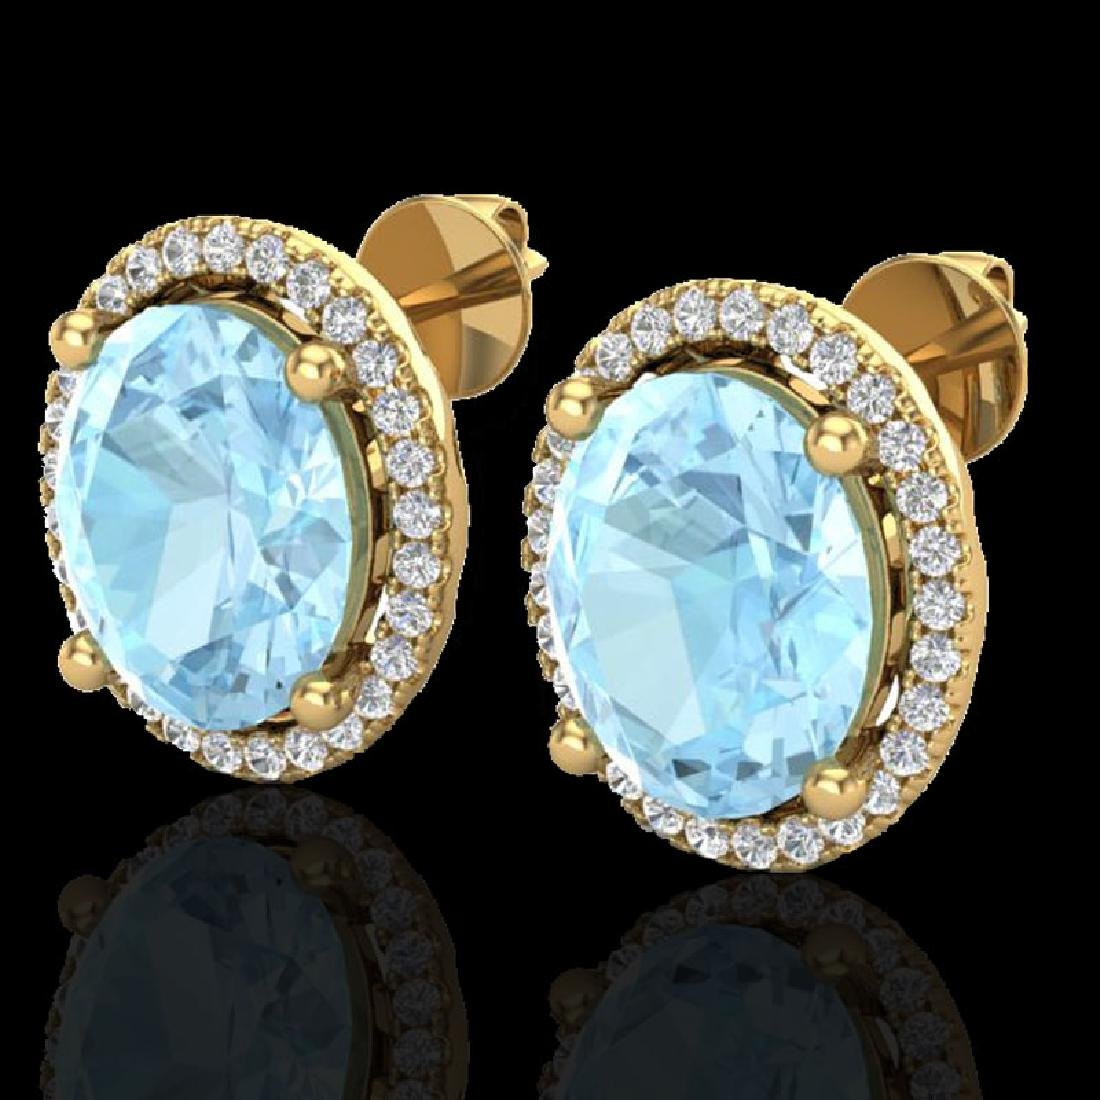 5 CTW Aquamarine & Micro Pave VS/SI Diamond Earrings